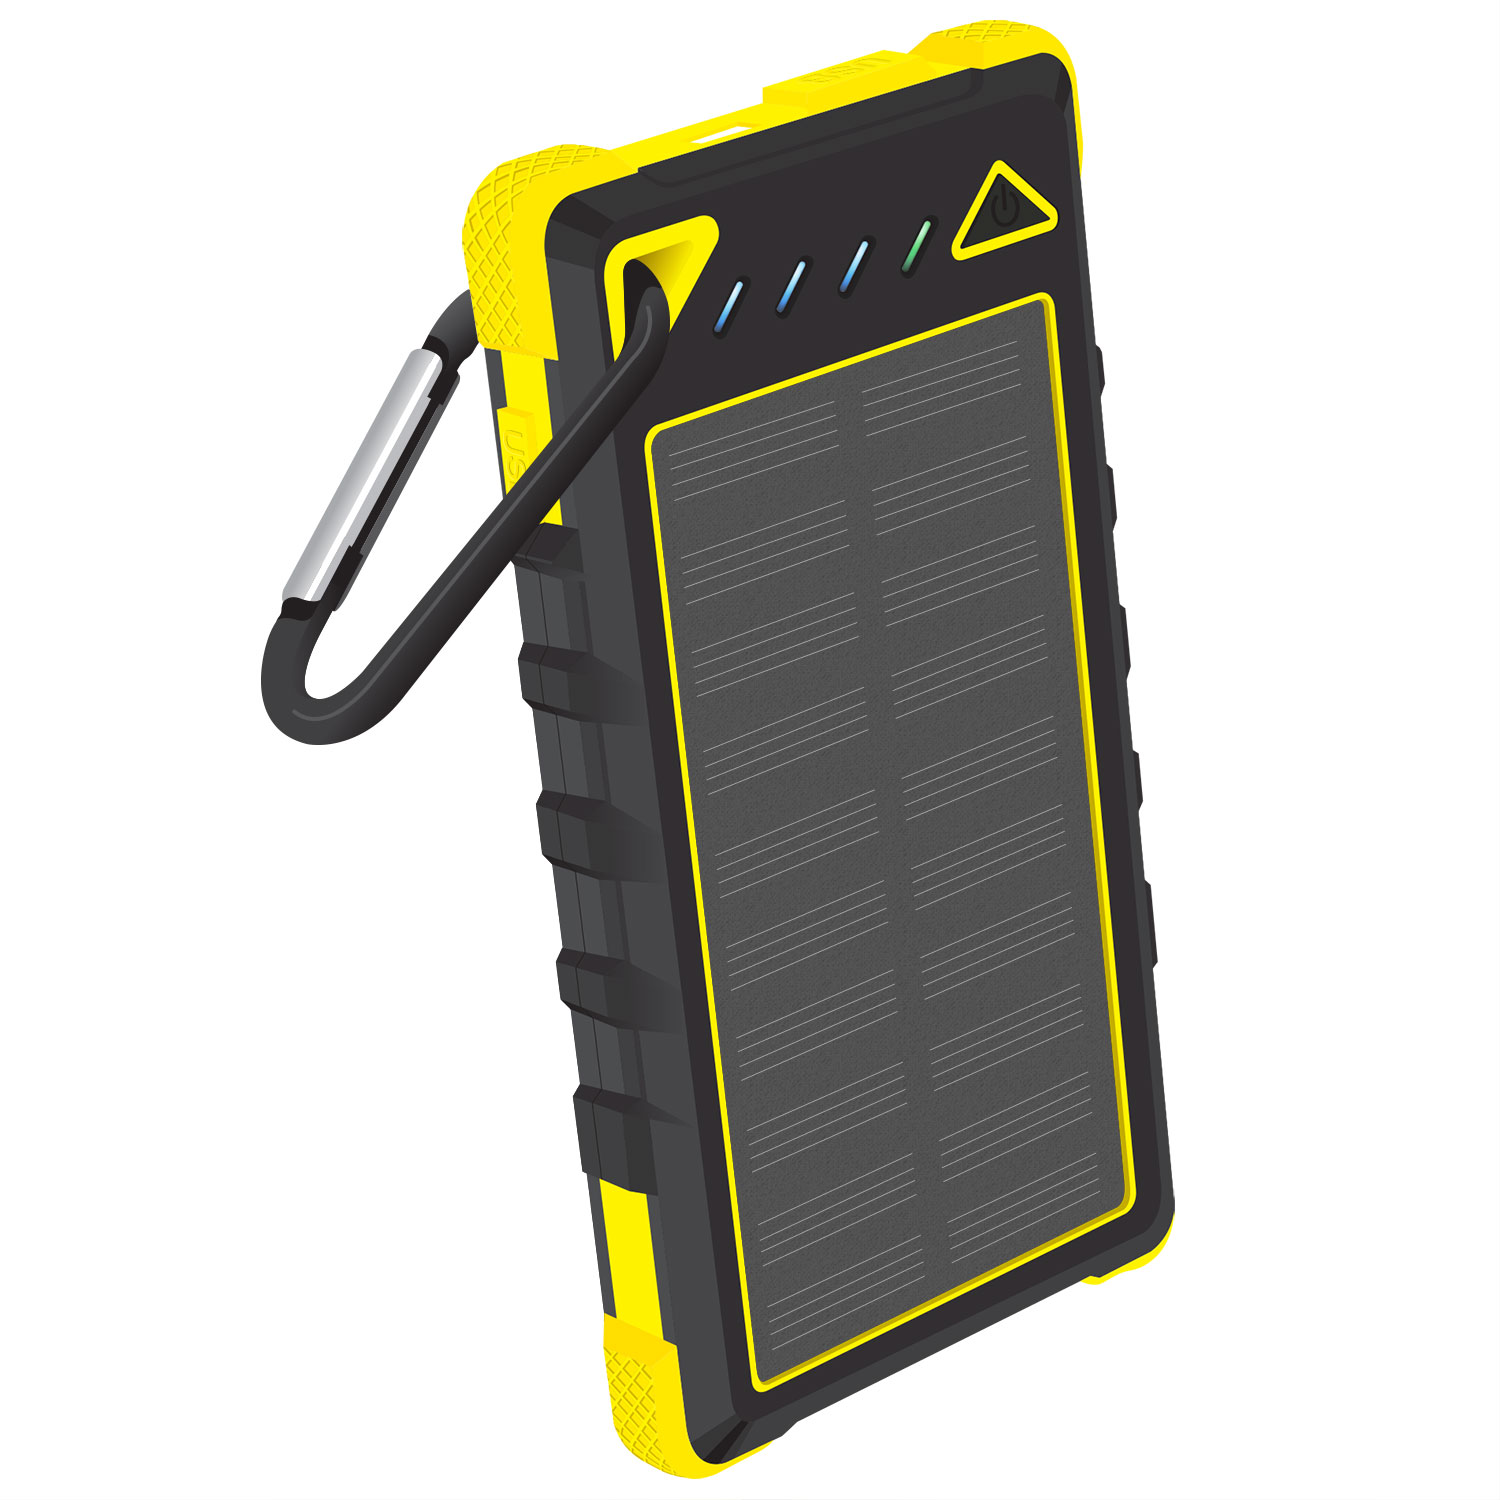 LG Q6 Solar Powered Portable PowerBank Yellow